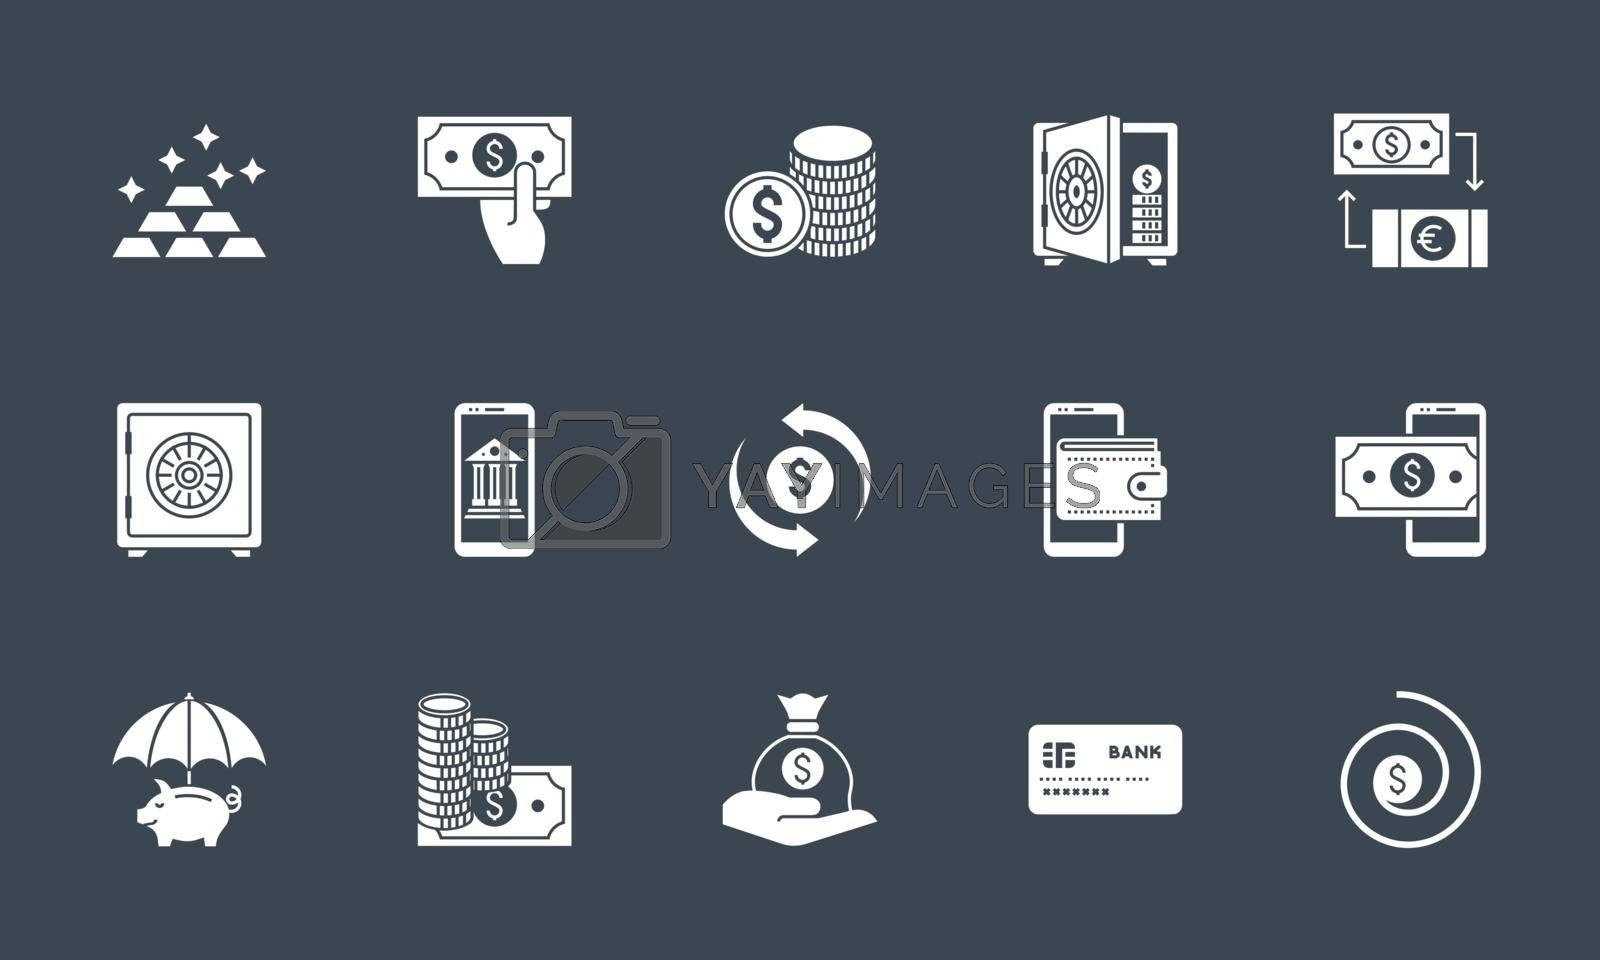 Banking icons set. Related vector glyph icons. Isolated onblack background. Vector illustration.